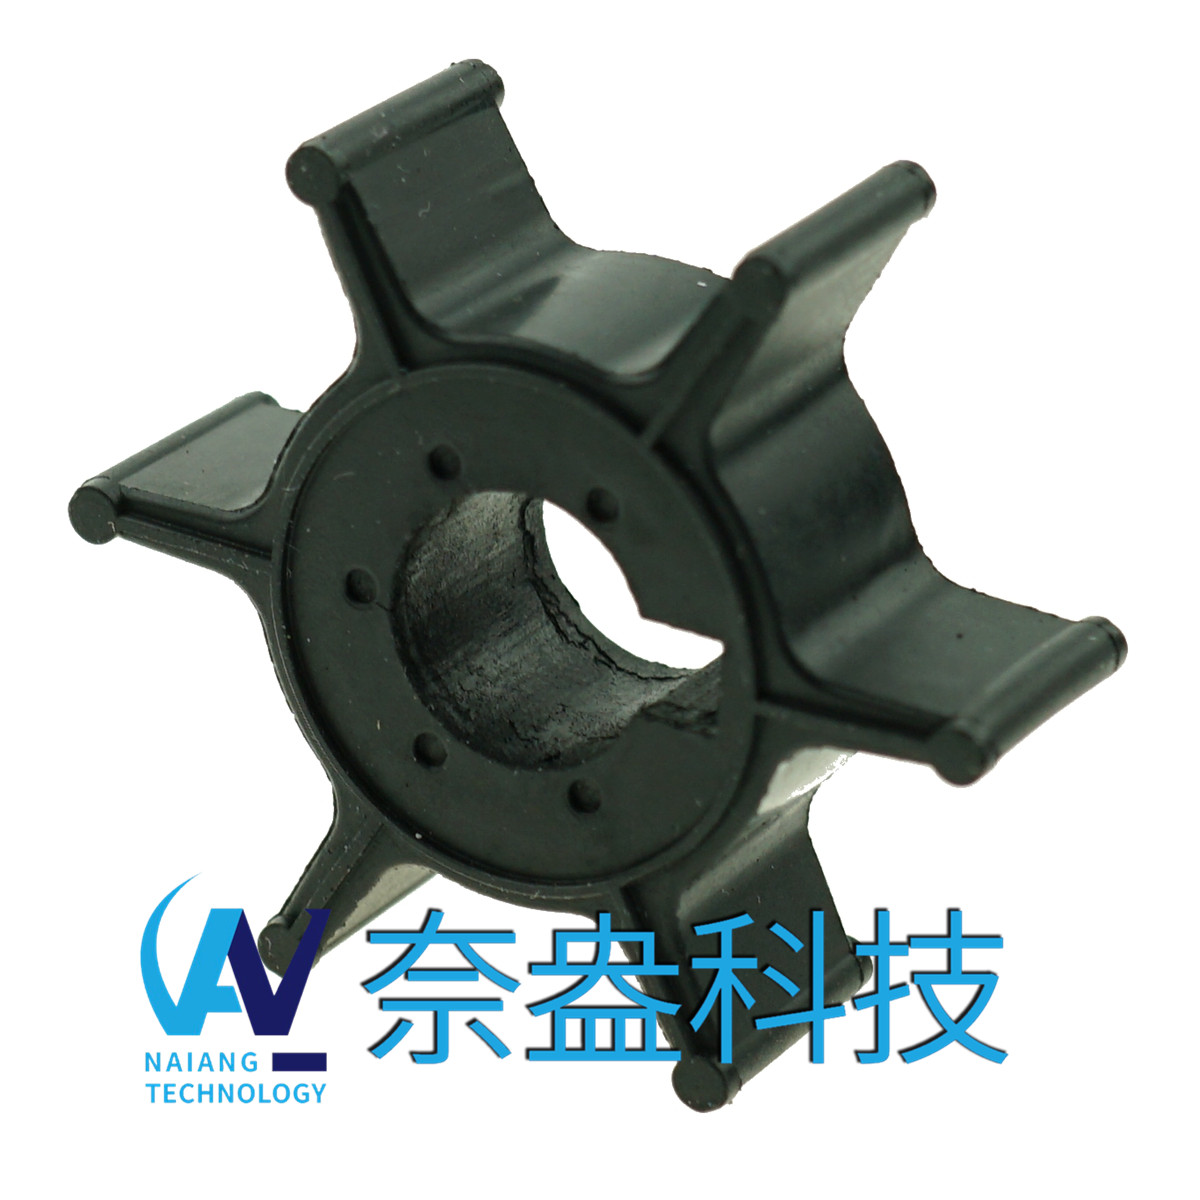 水星舷外機橡膠葉輪4/5hp Mercury Impeller 47-96305M